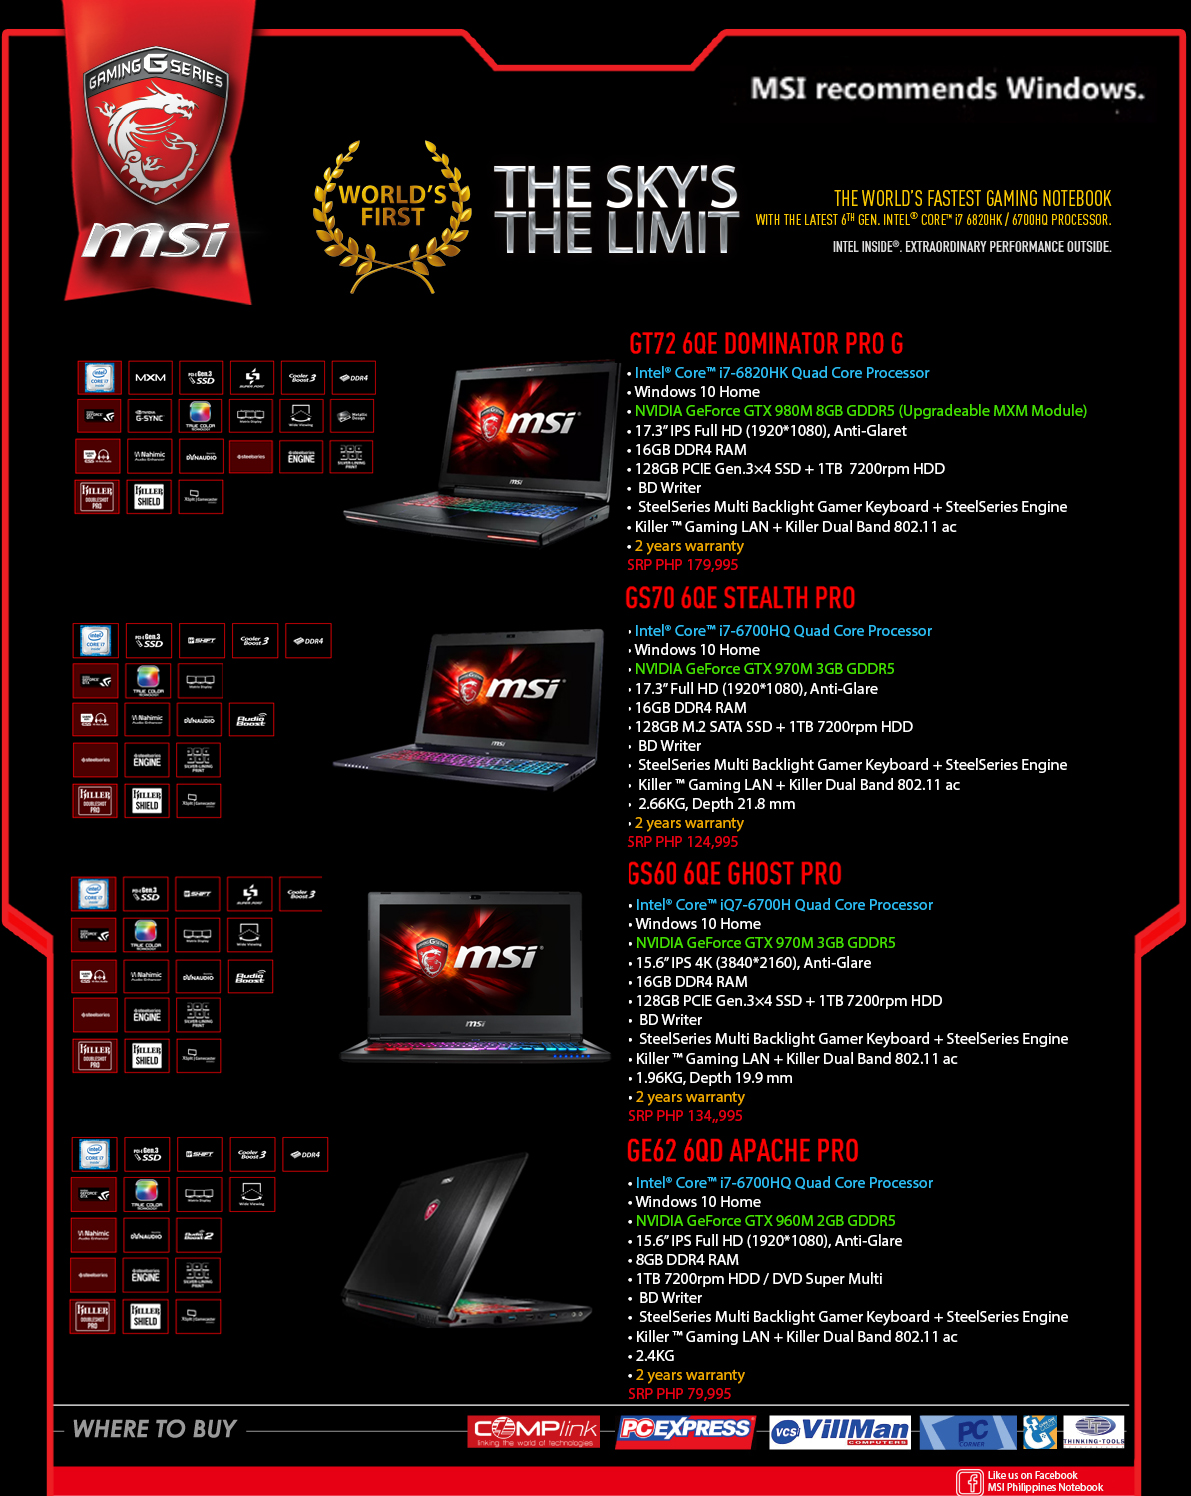 Msi Philippines Gt72s 6qf Dominator Pro G Gaming Laptop Dragon Edition Notebooks With The Latest Intels 6th Gen Skylake Processors Available On Authorized Resellers Nationwide